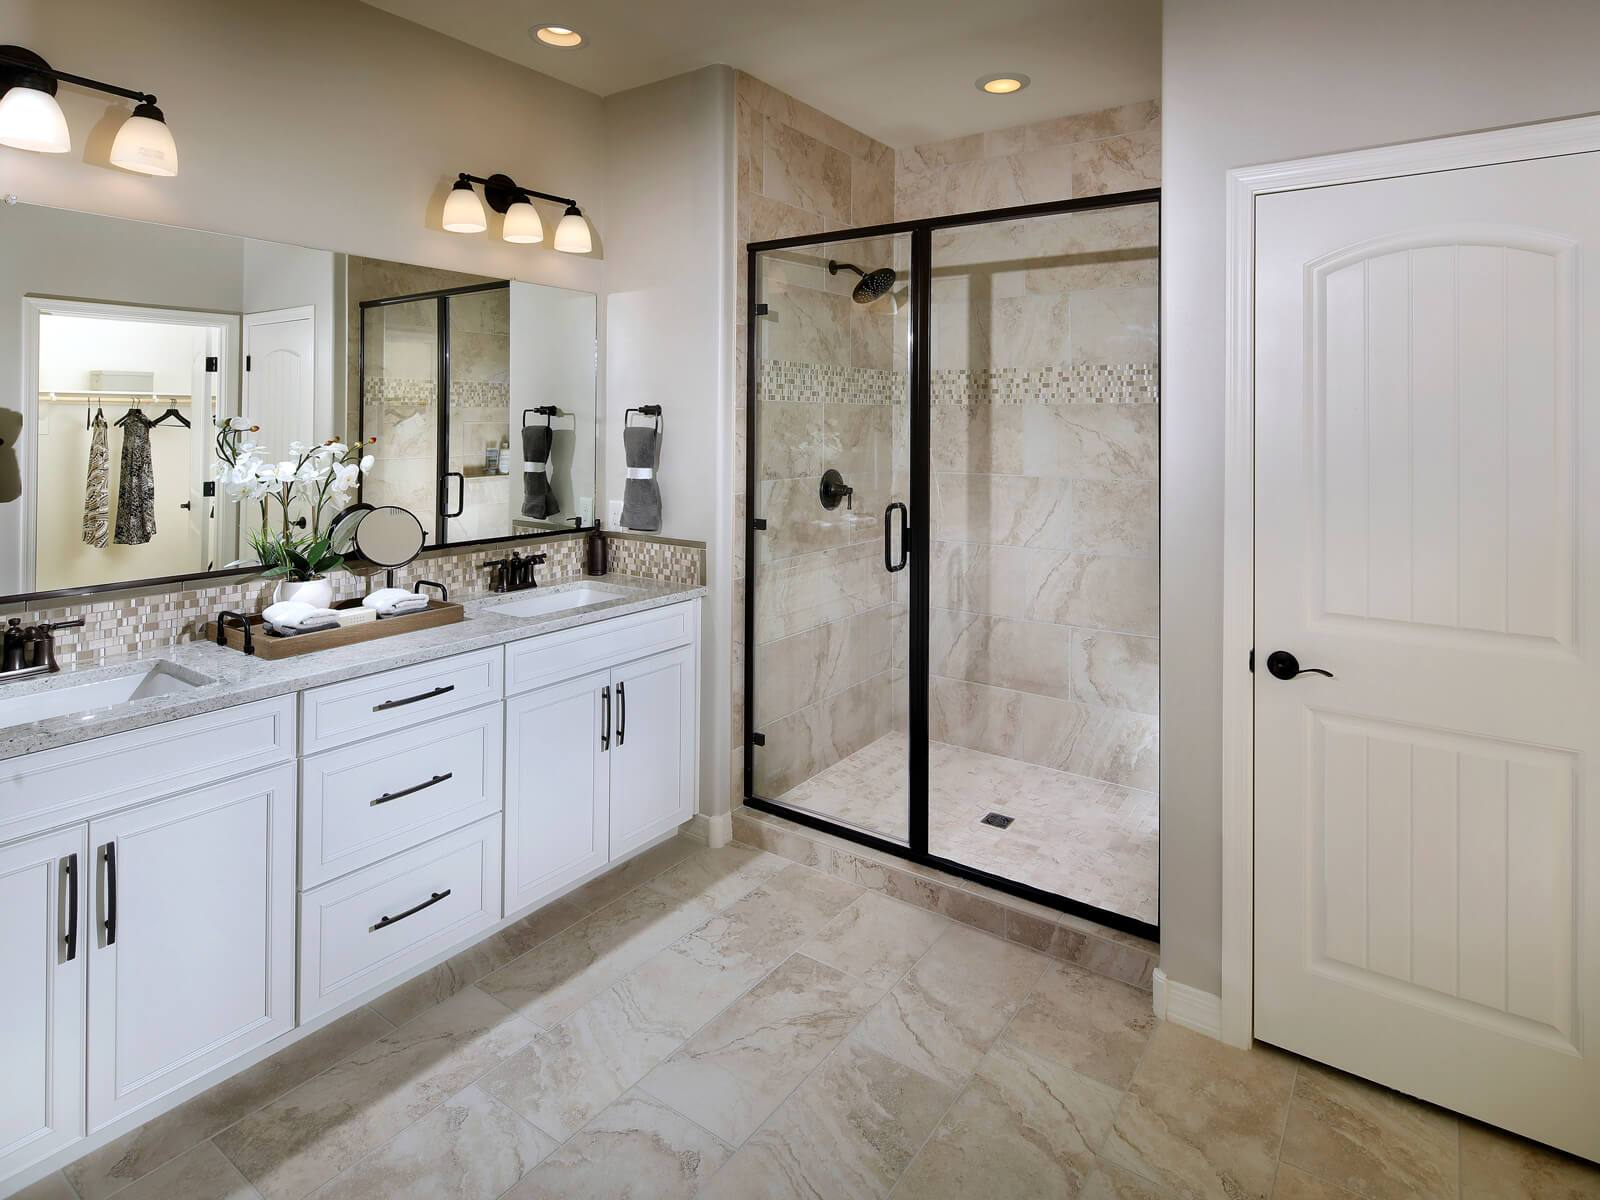 Bathroom featured in the Festival By Meritage Homes in Tucson, AZ